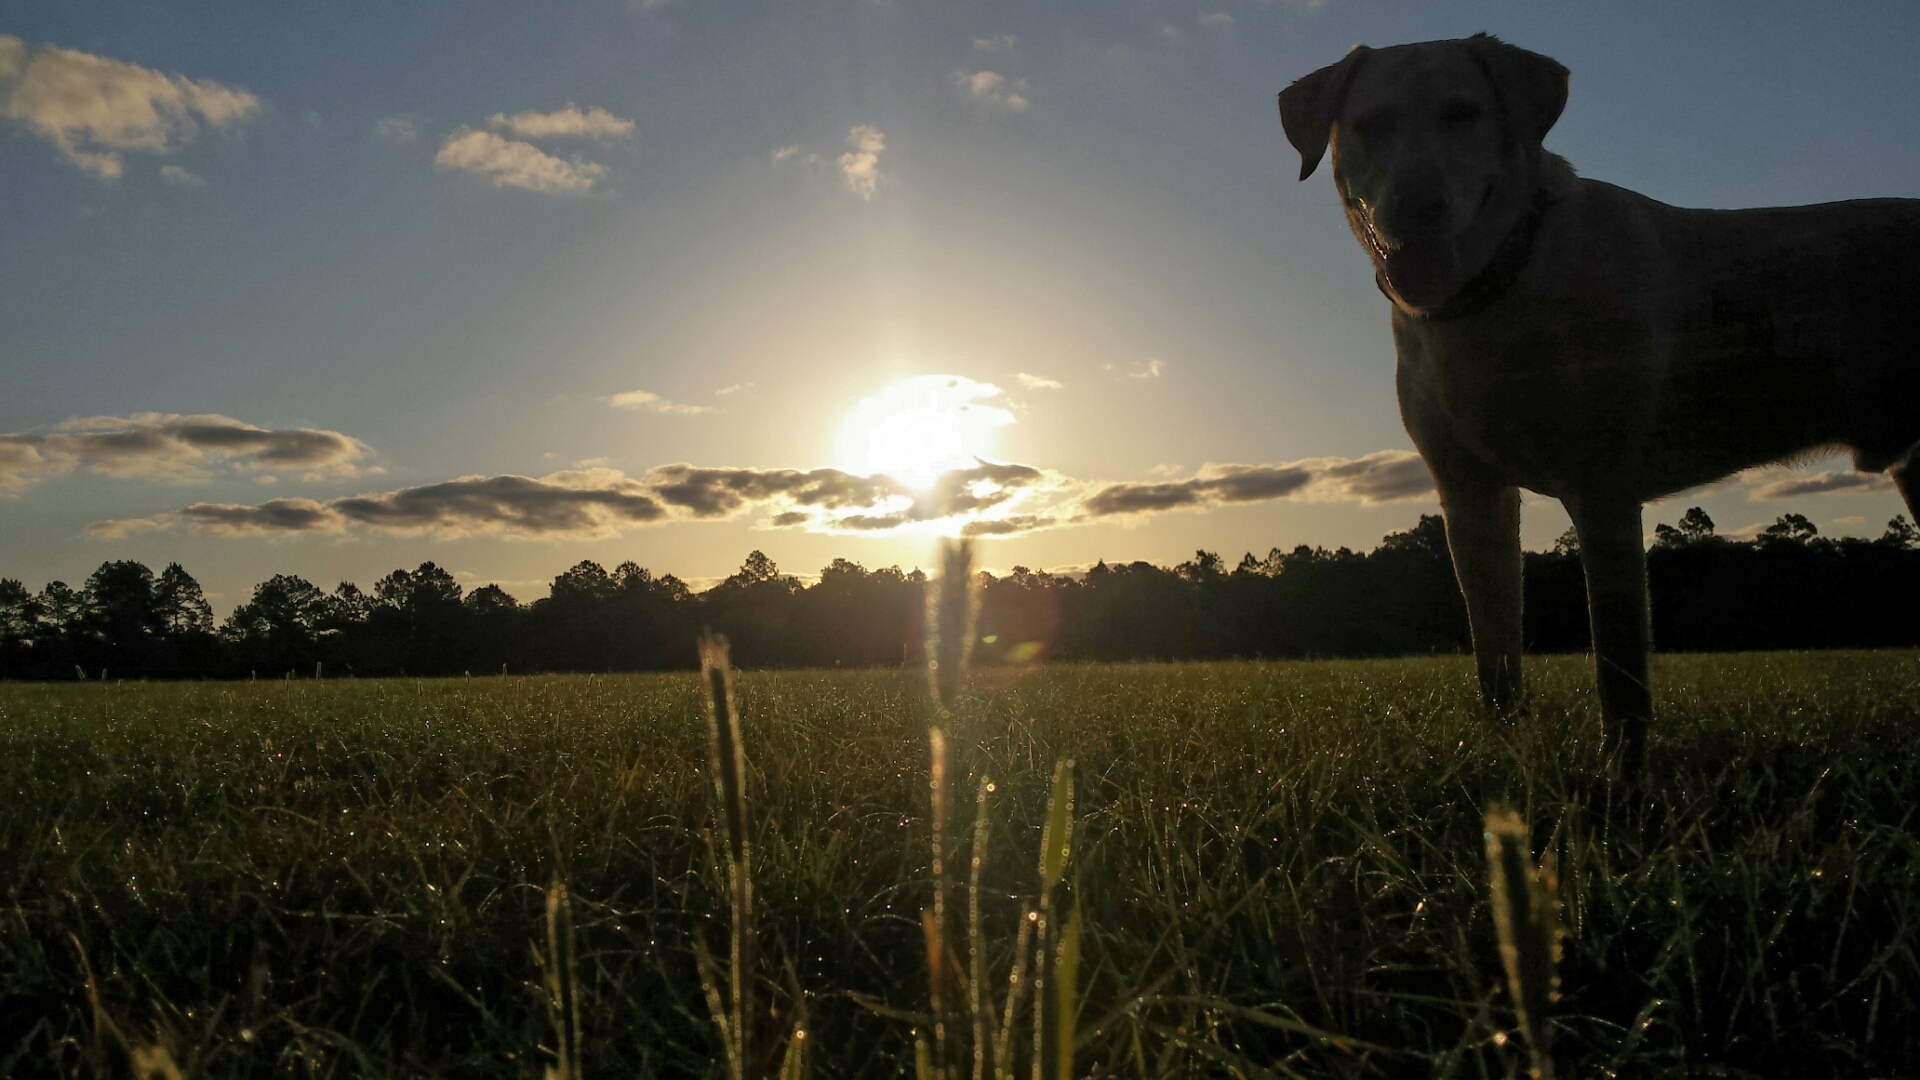 yellow lab standing in a field with sunrise behind him, ready to face the day with courage